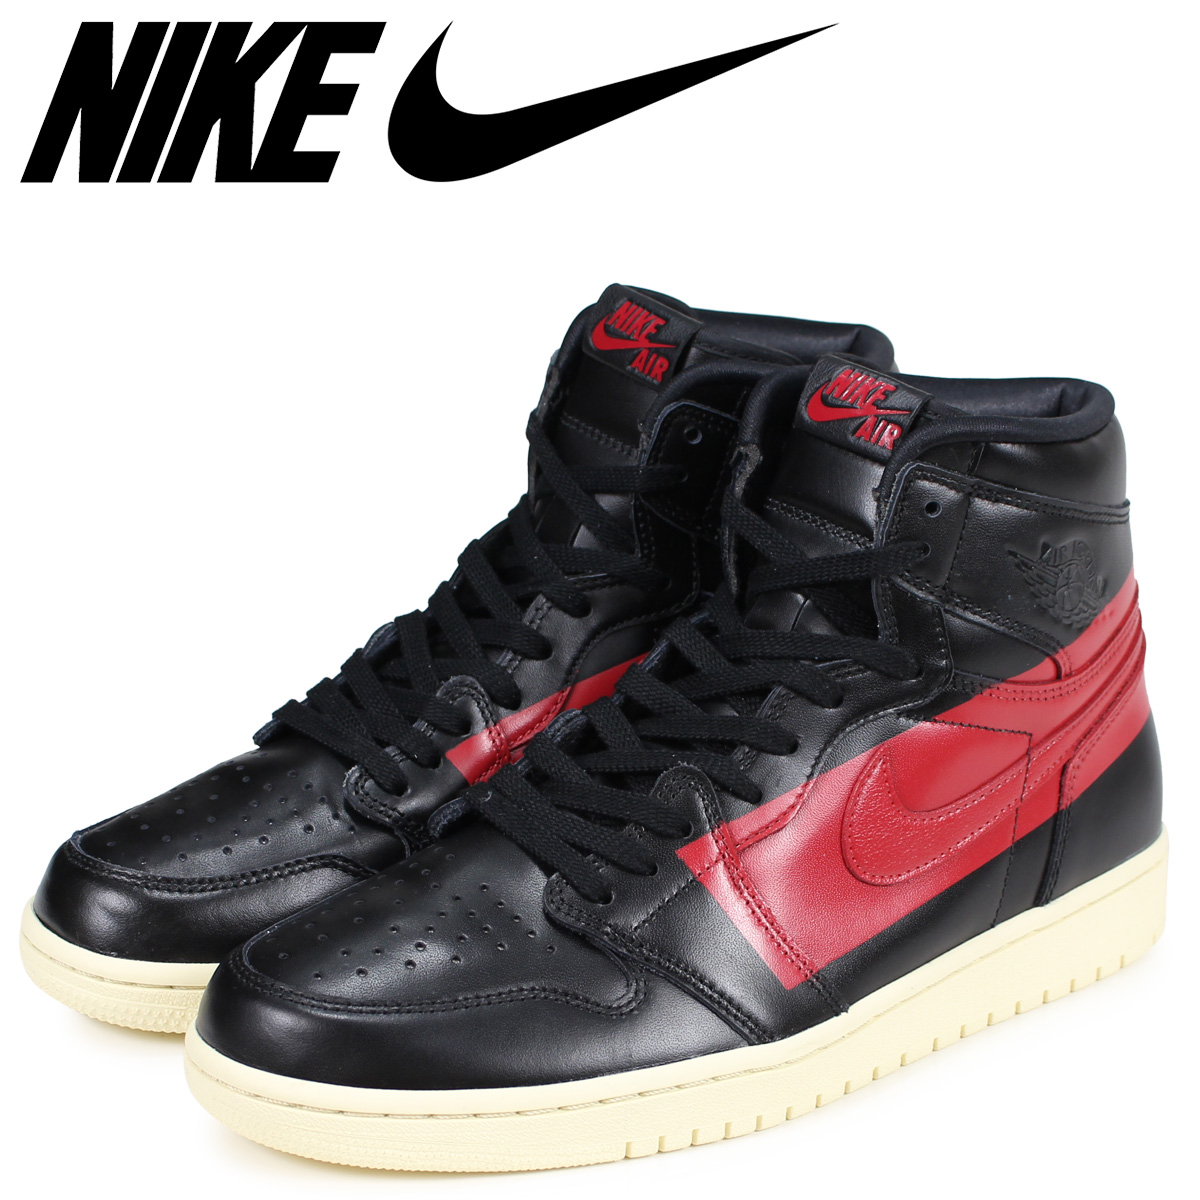 Nike Air Jordan 1 Retro High OG Defiant Couture bq6682 006